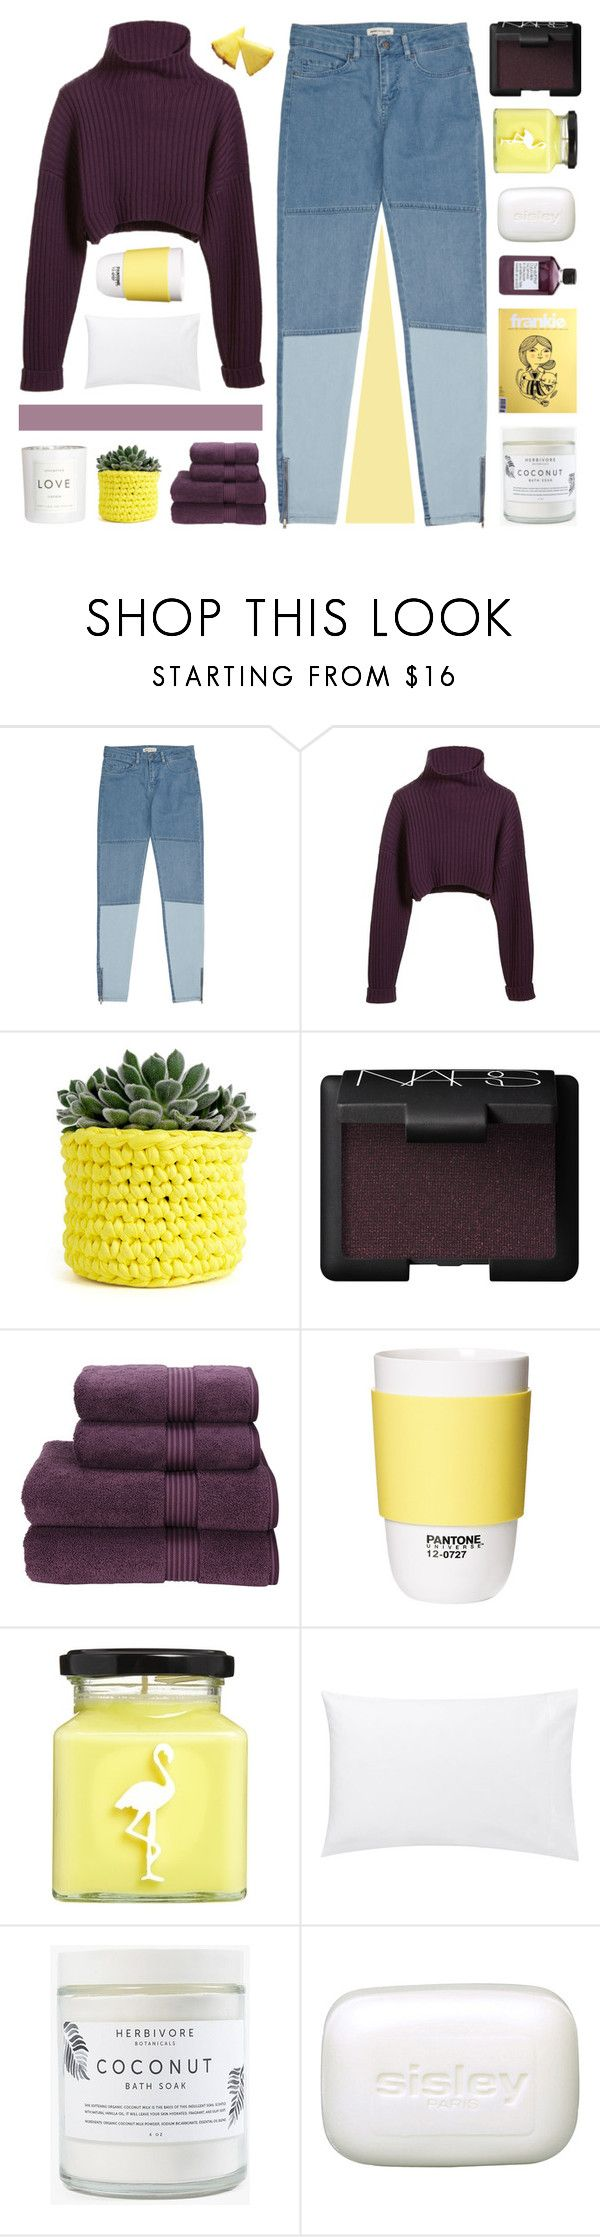 """""""– lord, save me, my drug is my baby"""" by neutral-bunny ❤ liked on Polyvore featuring Reiss, GUESS by Marciano, Wool and the Gang, NARS Cosmetics, Christy, Not Soap, Radio, ROOM COPENHAGEN, Flamingo Candles, Jigsaw and Herbivore"""